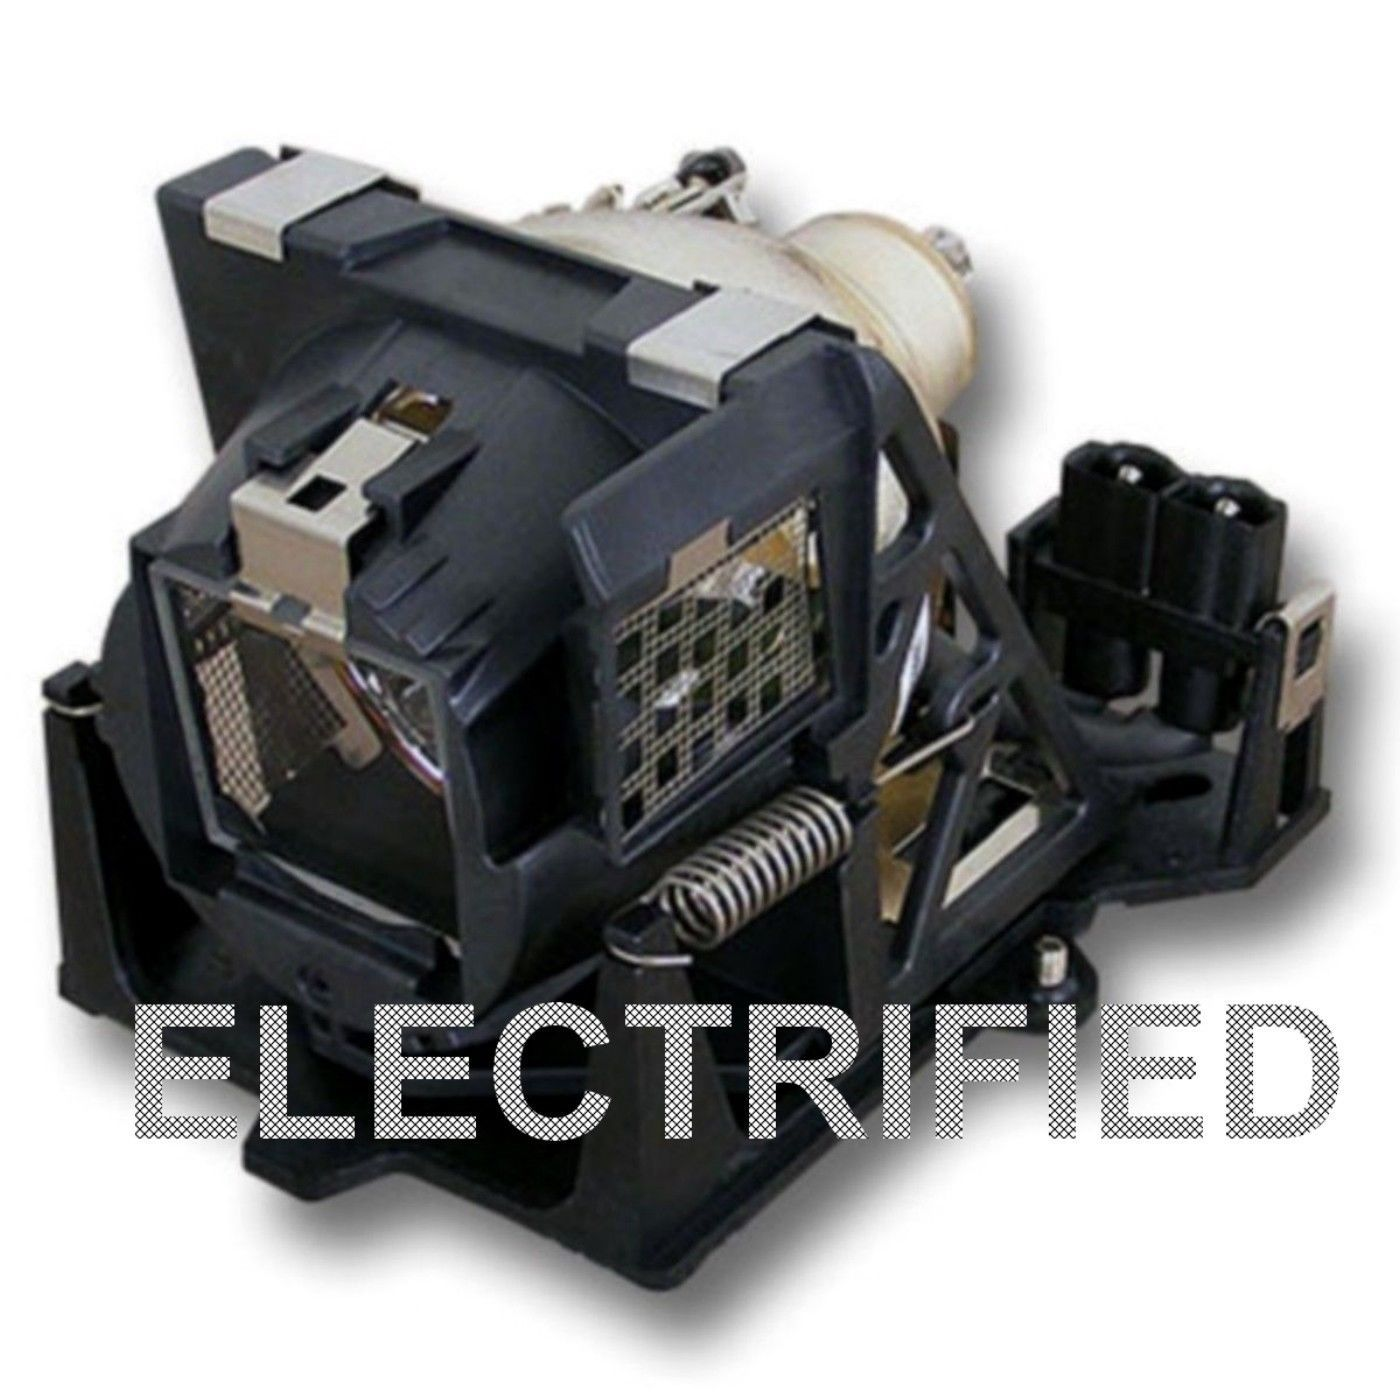 TOSHIBA TDP-F1+ TDPF1 LAMP IN HOUSING FOR PROJECTOR MODEL TDPF1PLUS TDP-F1PLUS - $43.89